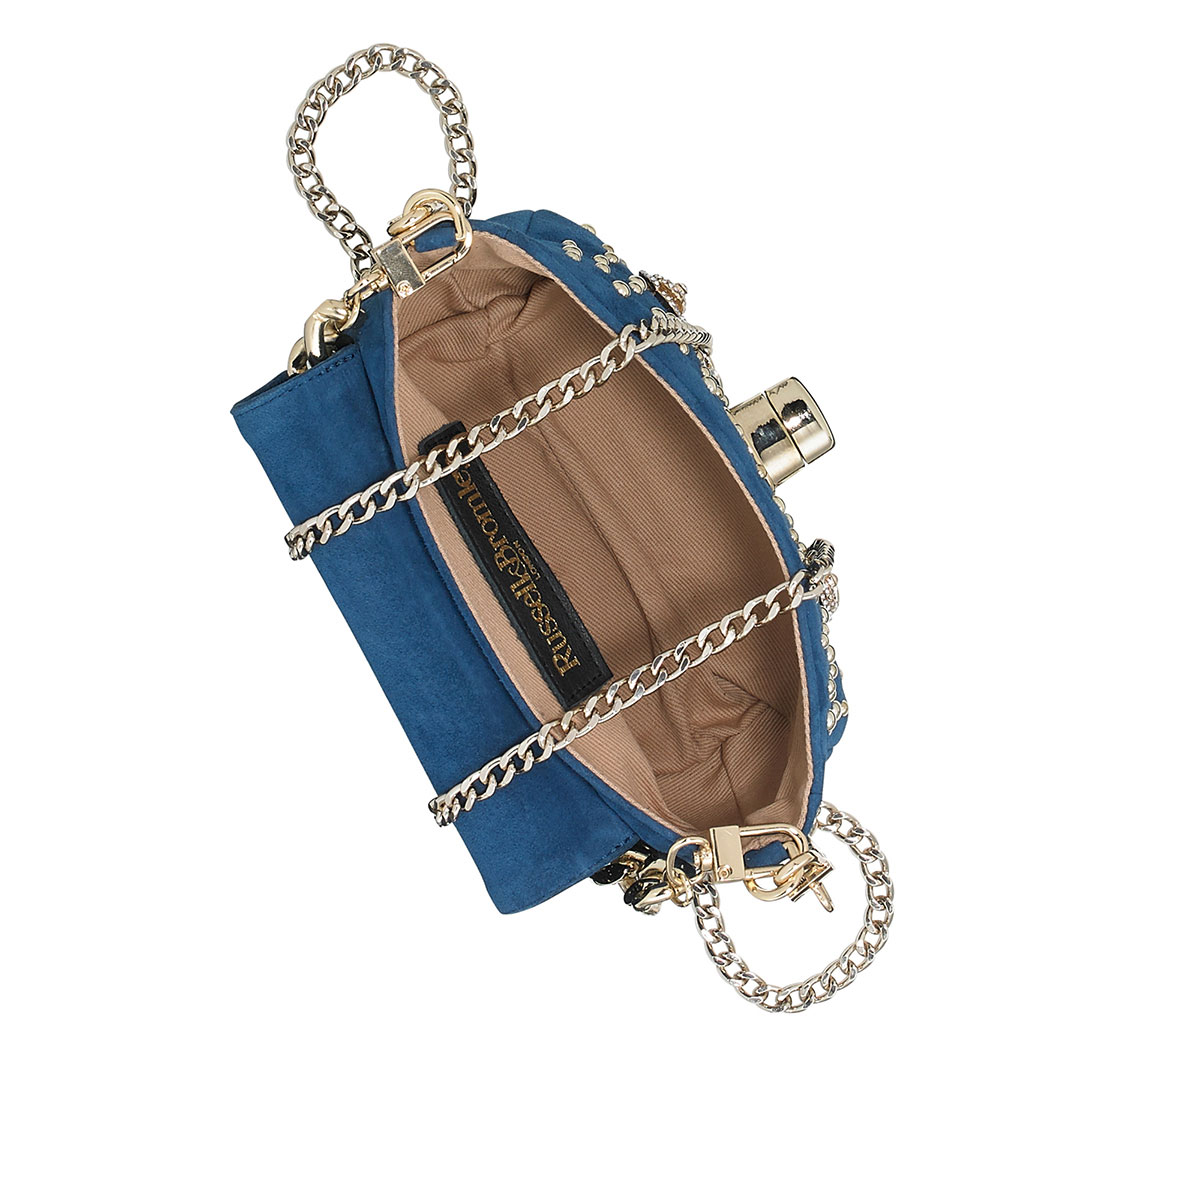 Russell And Bromley ROSEHIP Mini Chain Strap Bag